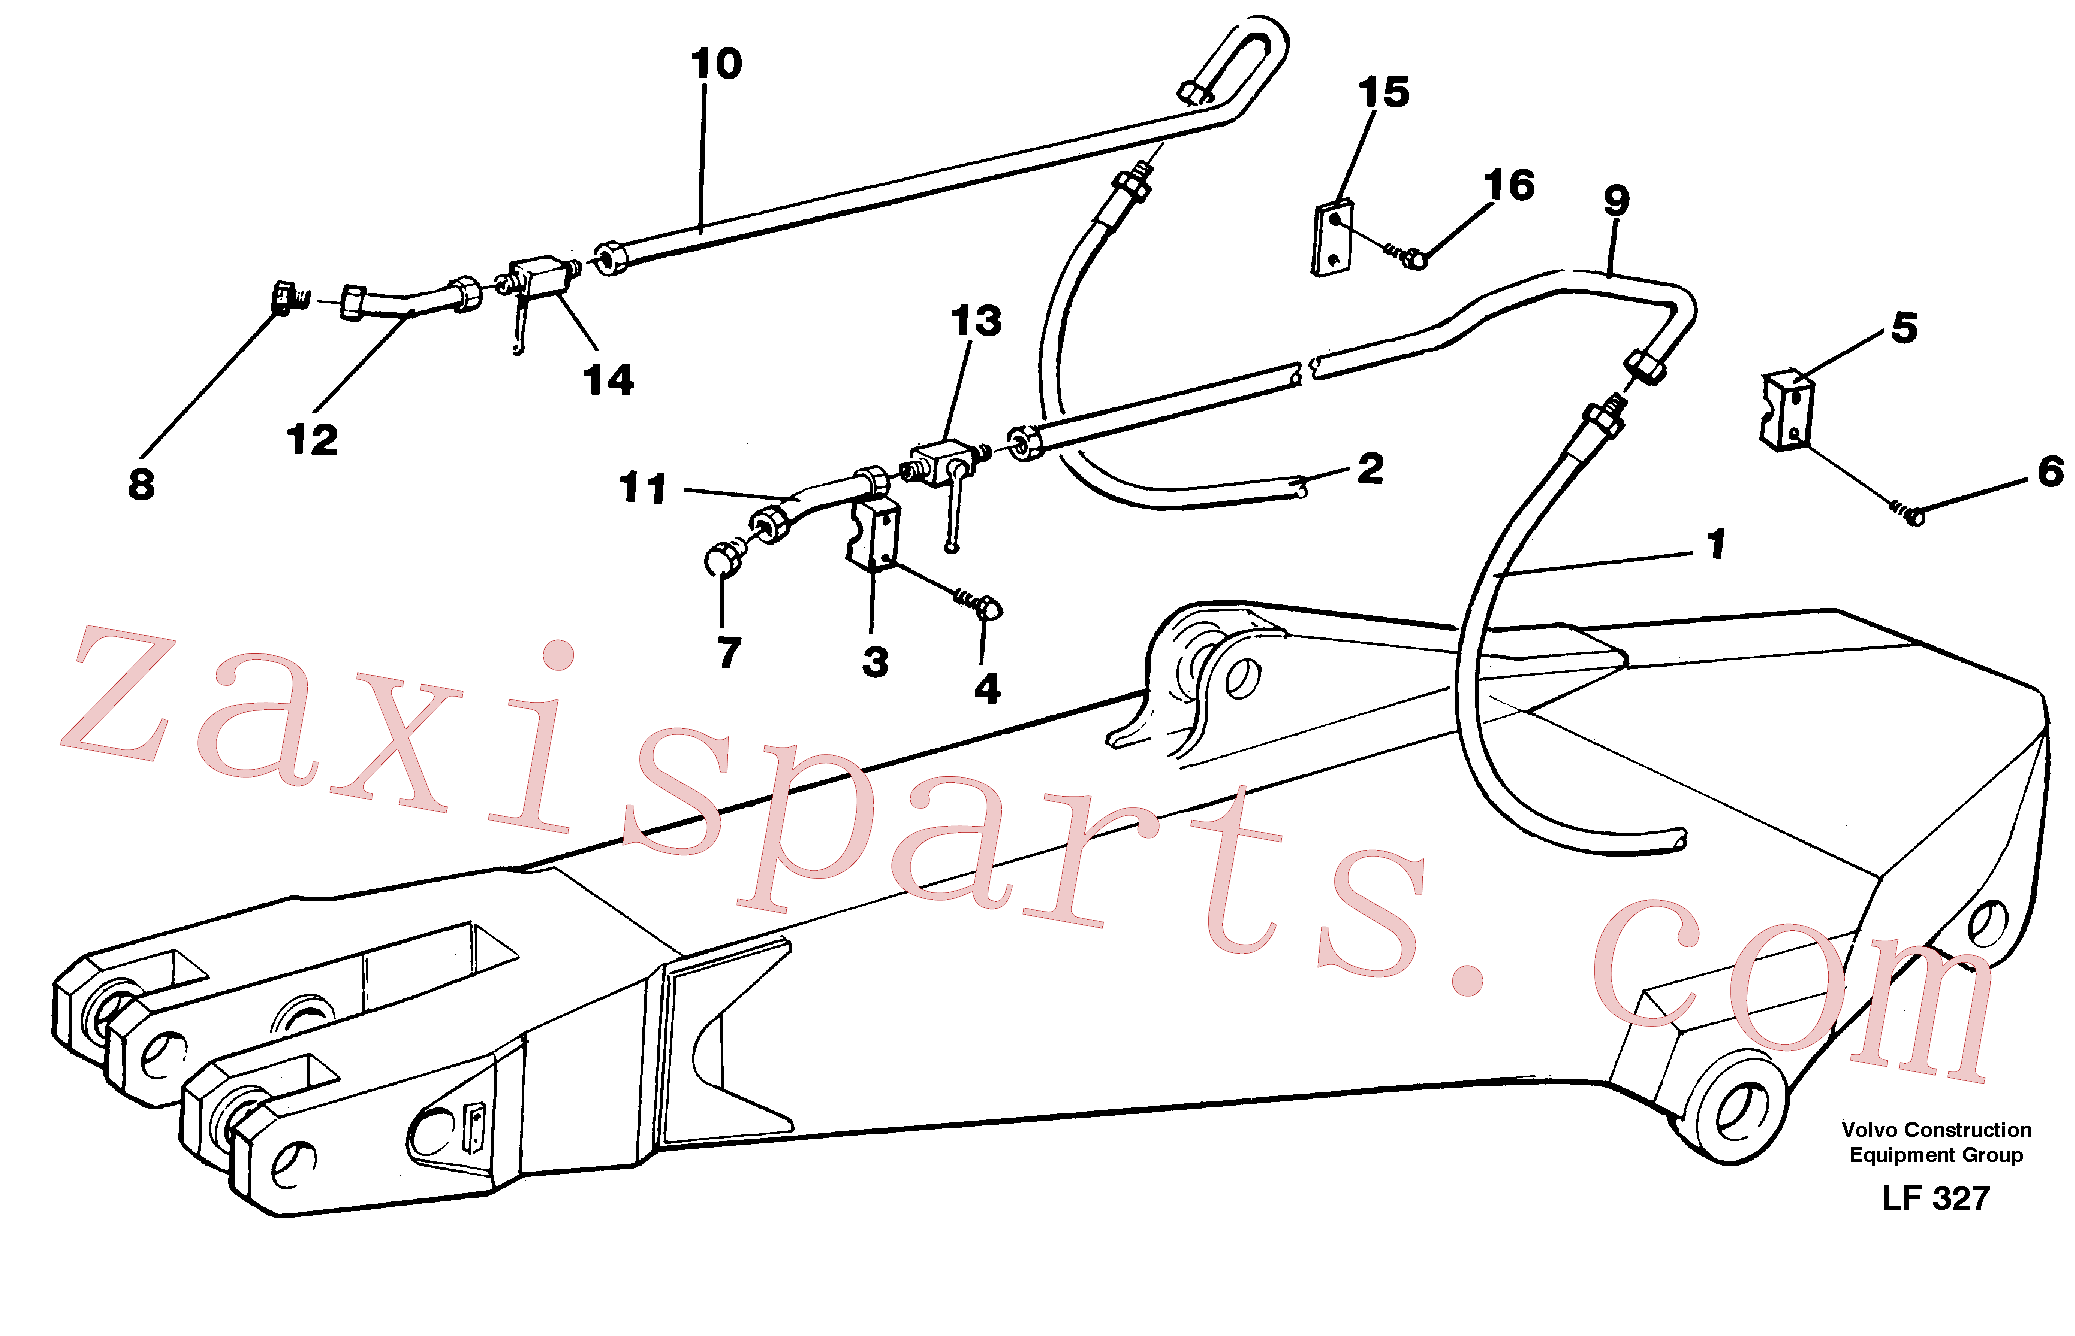 VOE14263478 for Volvo Hammer hydraulics for dipper arm incl. shut-offcocks.(LF327 assembly)